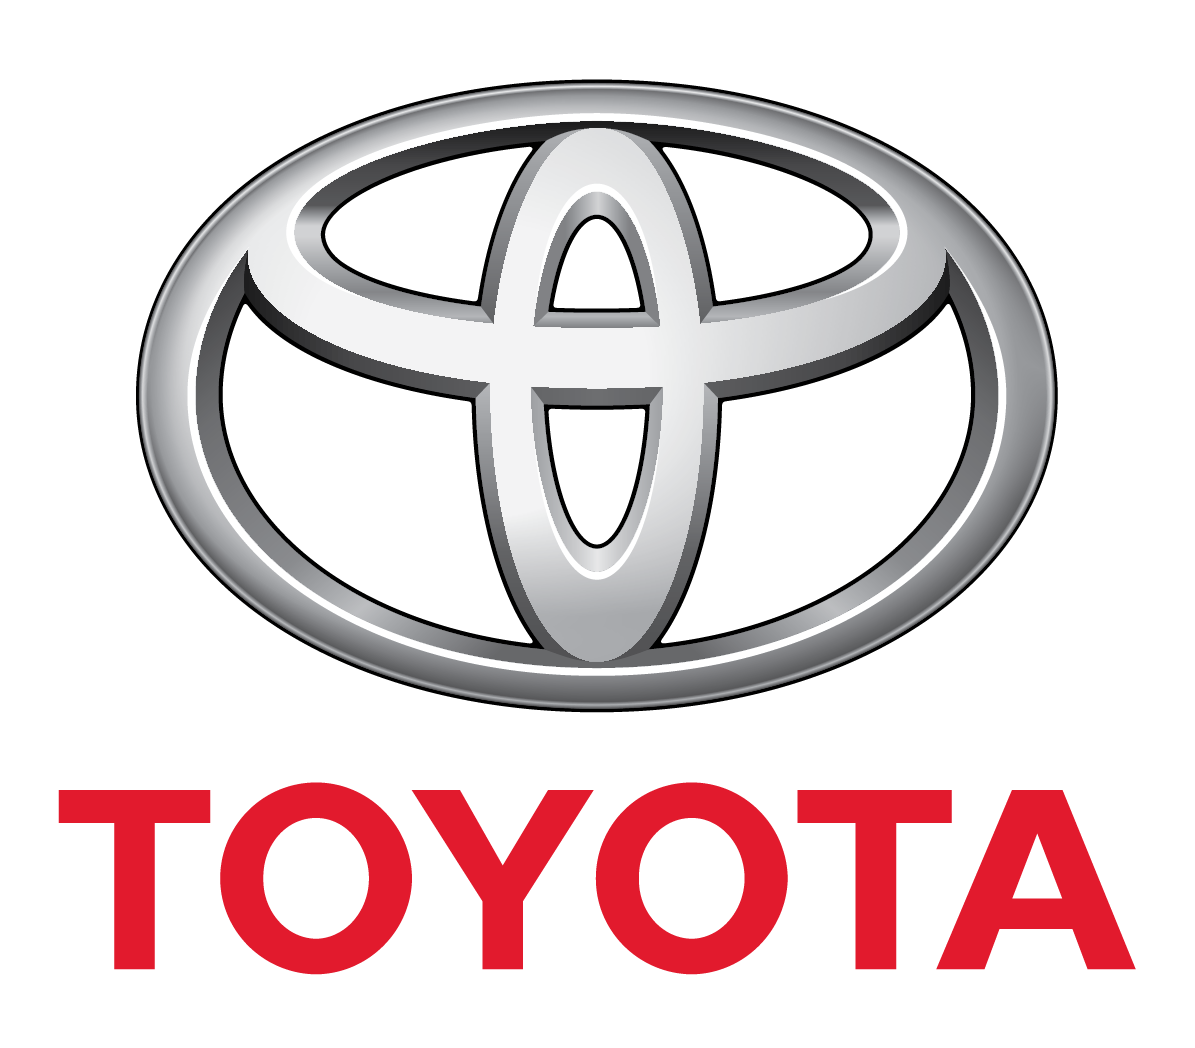 Used Toyota Verso Cars For Sale With PistonHeads